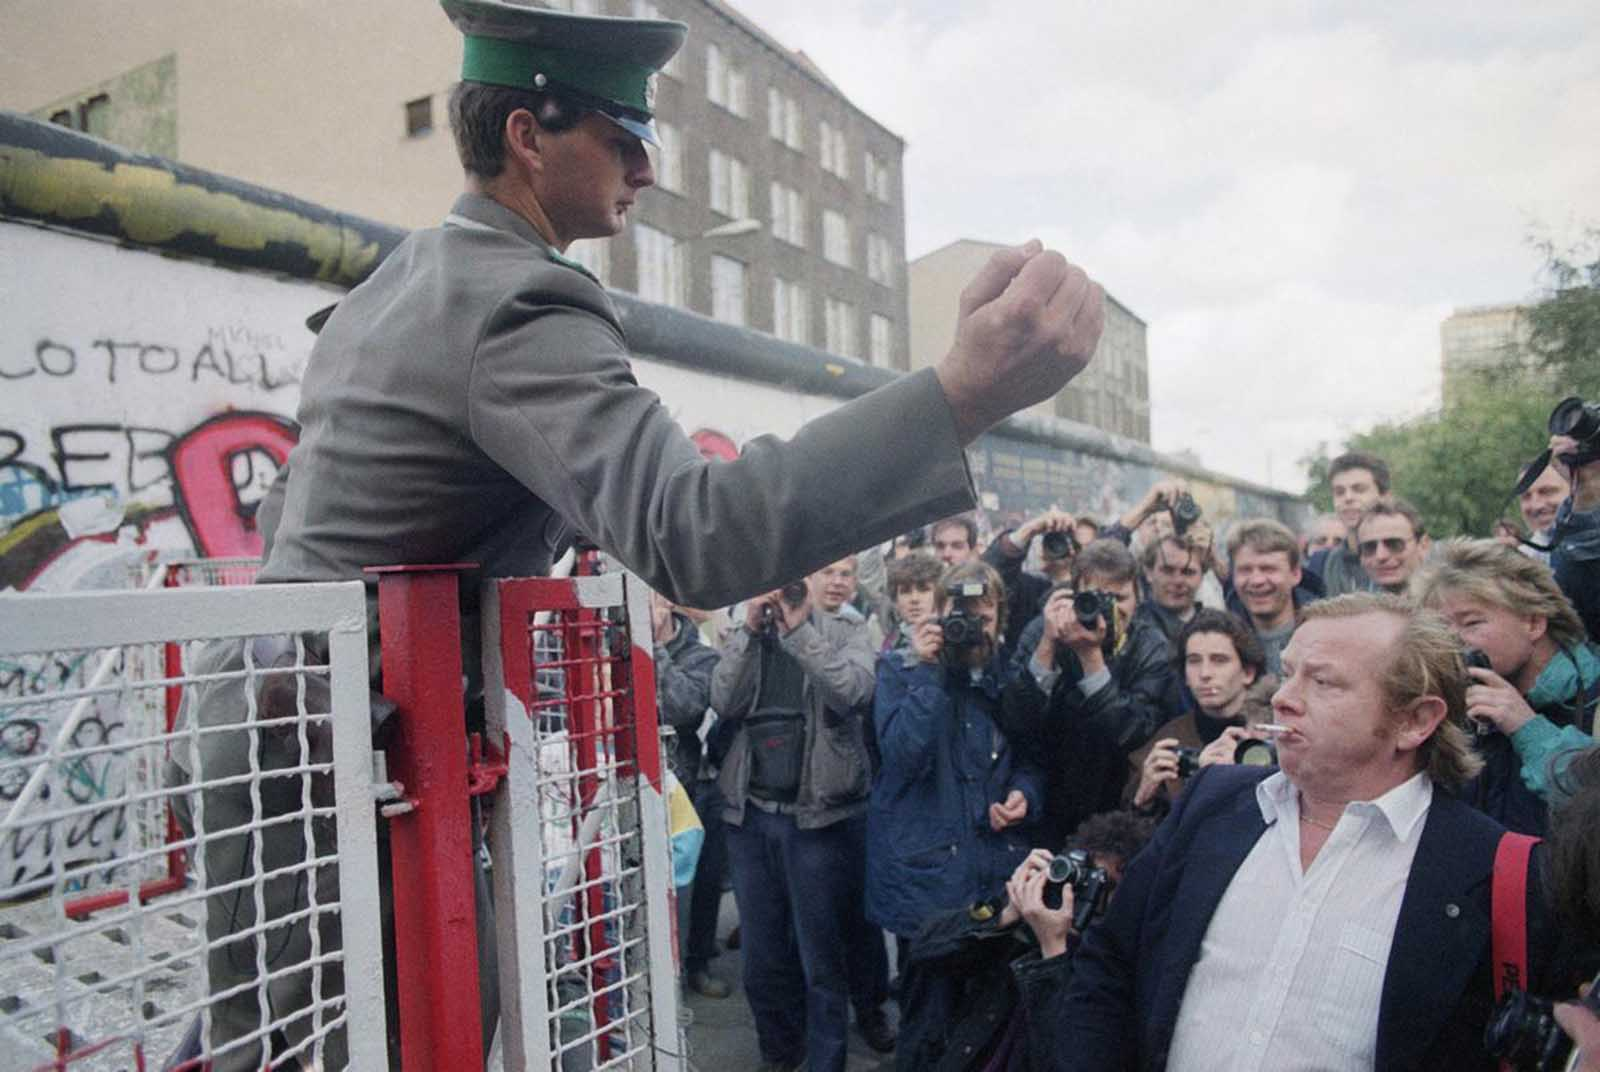 An unidentified East German border guard gestures toward some demonstrators, who who threw bottles on the eastern side of newly-erected barriers at the Checkpoint Charlie crossing point on October 7, 1989.